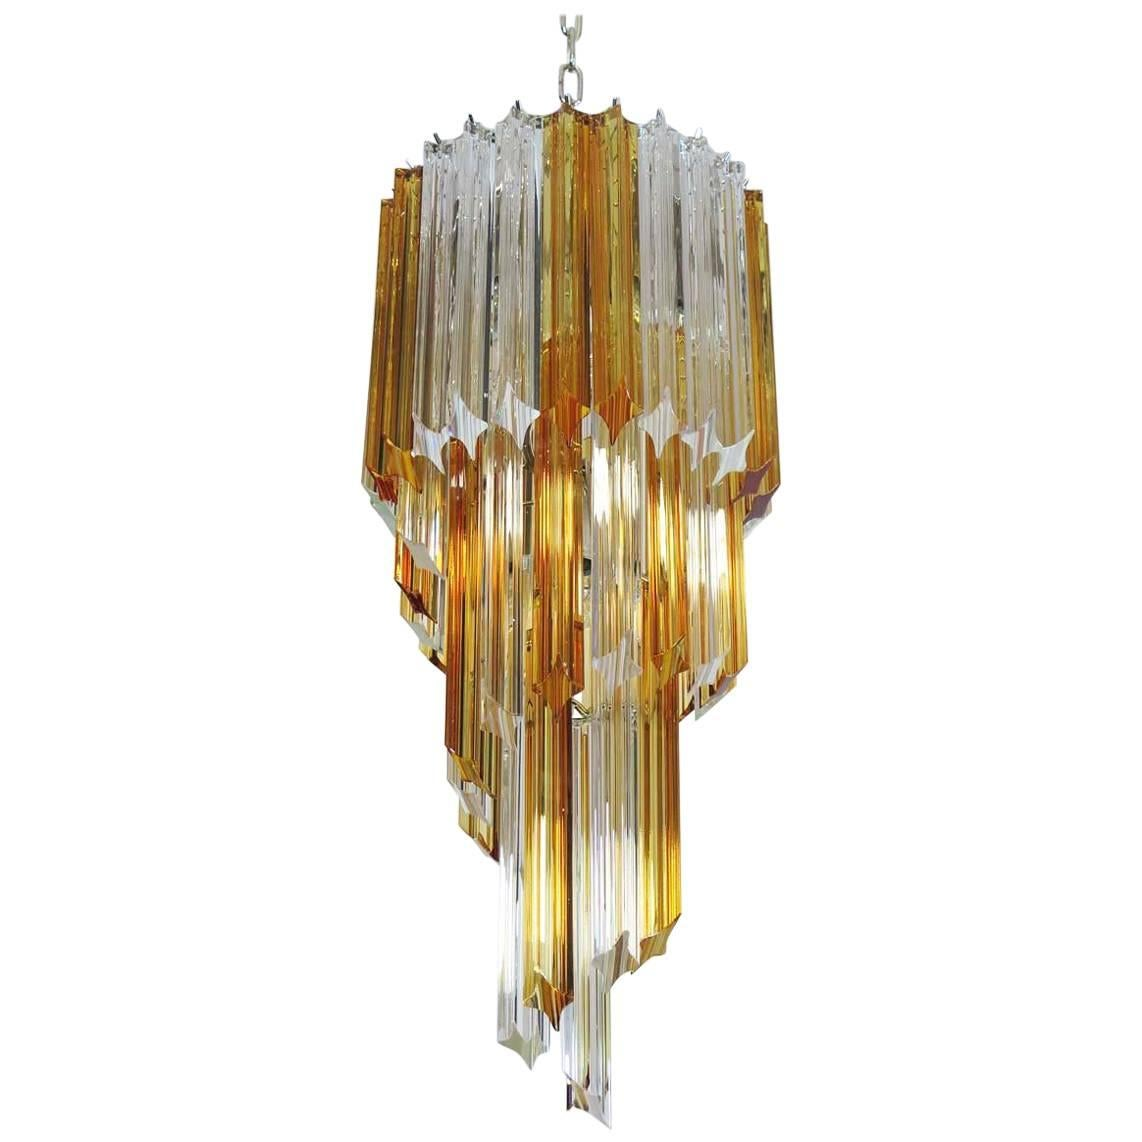 Murano Vintage Chandelier – 54 Quadriedri Prisms Transparent and Amber